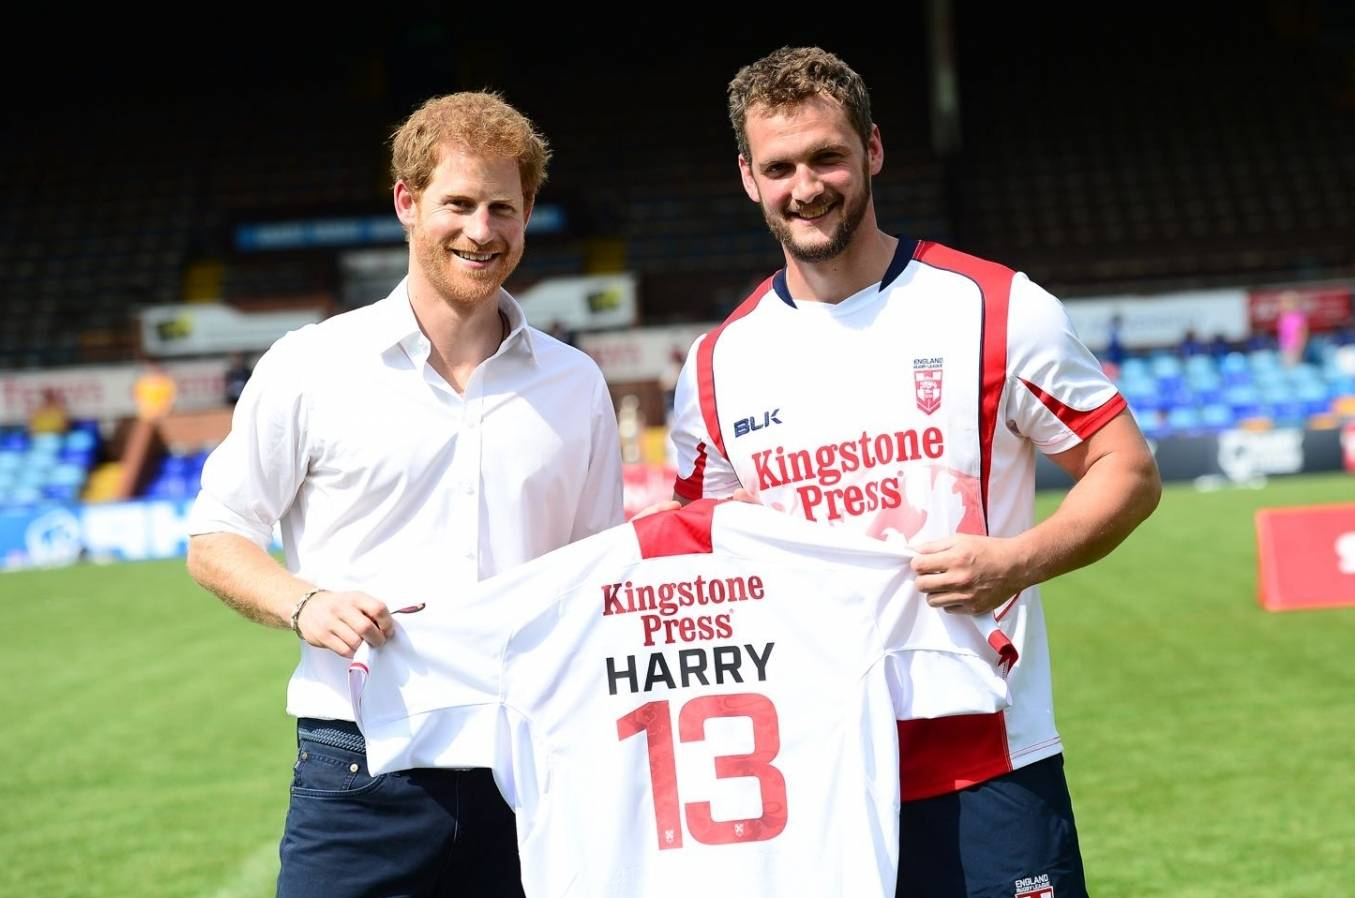 HRH Prince Harry attends Sky Try Rugby League Festival in Leeds